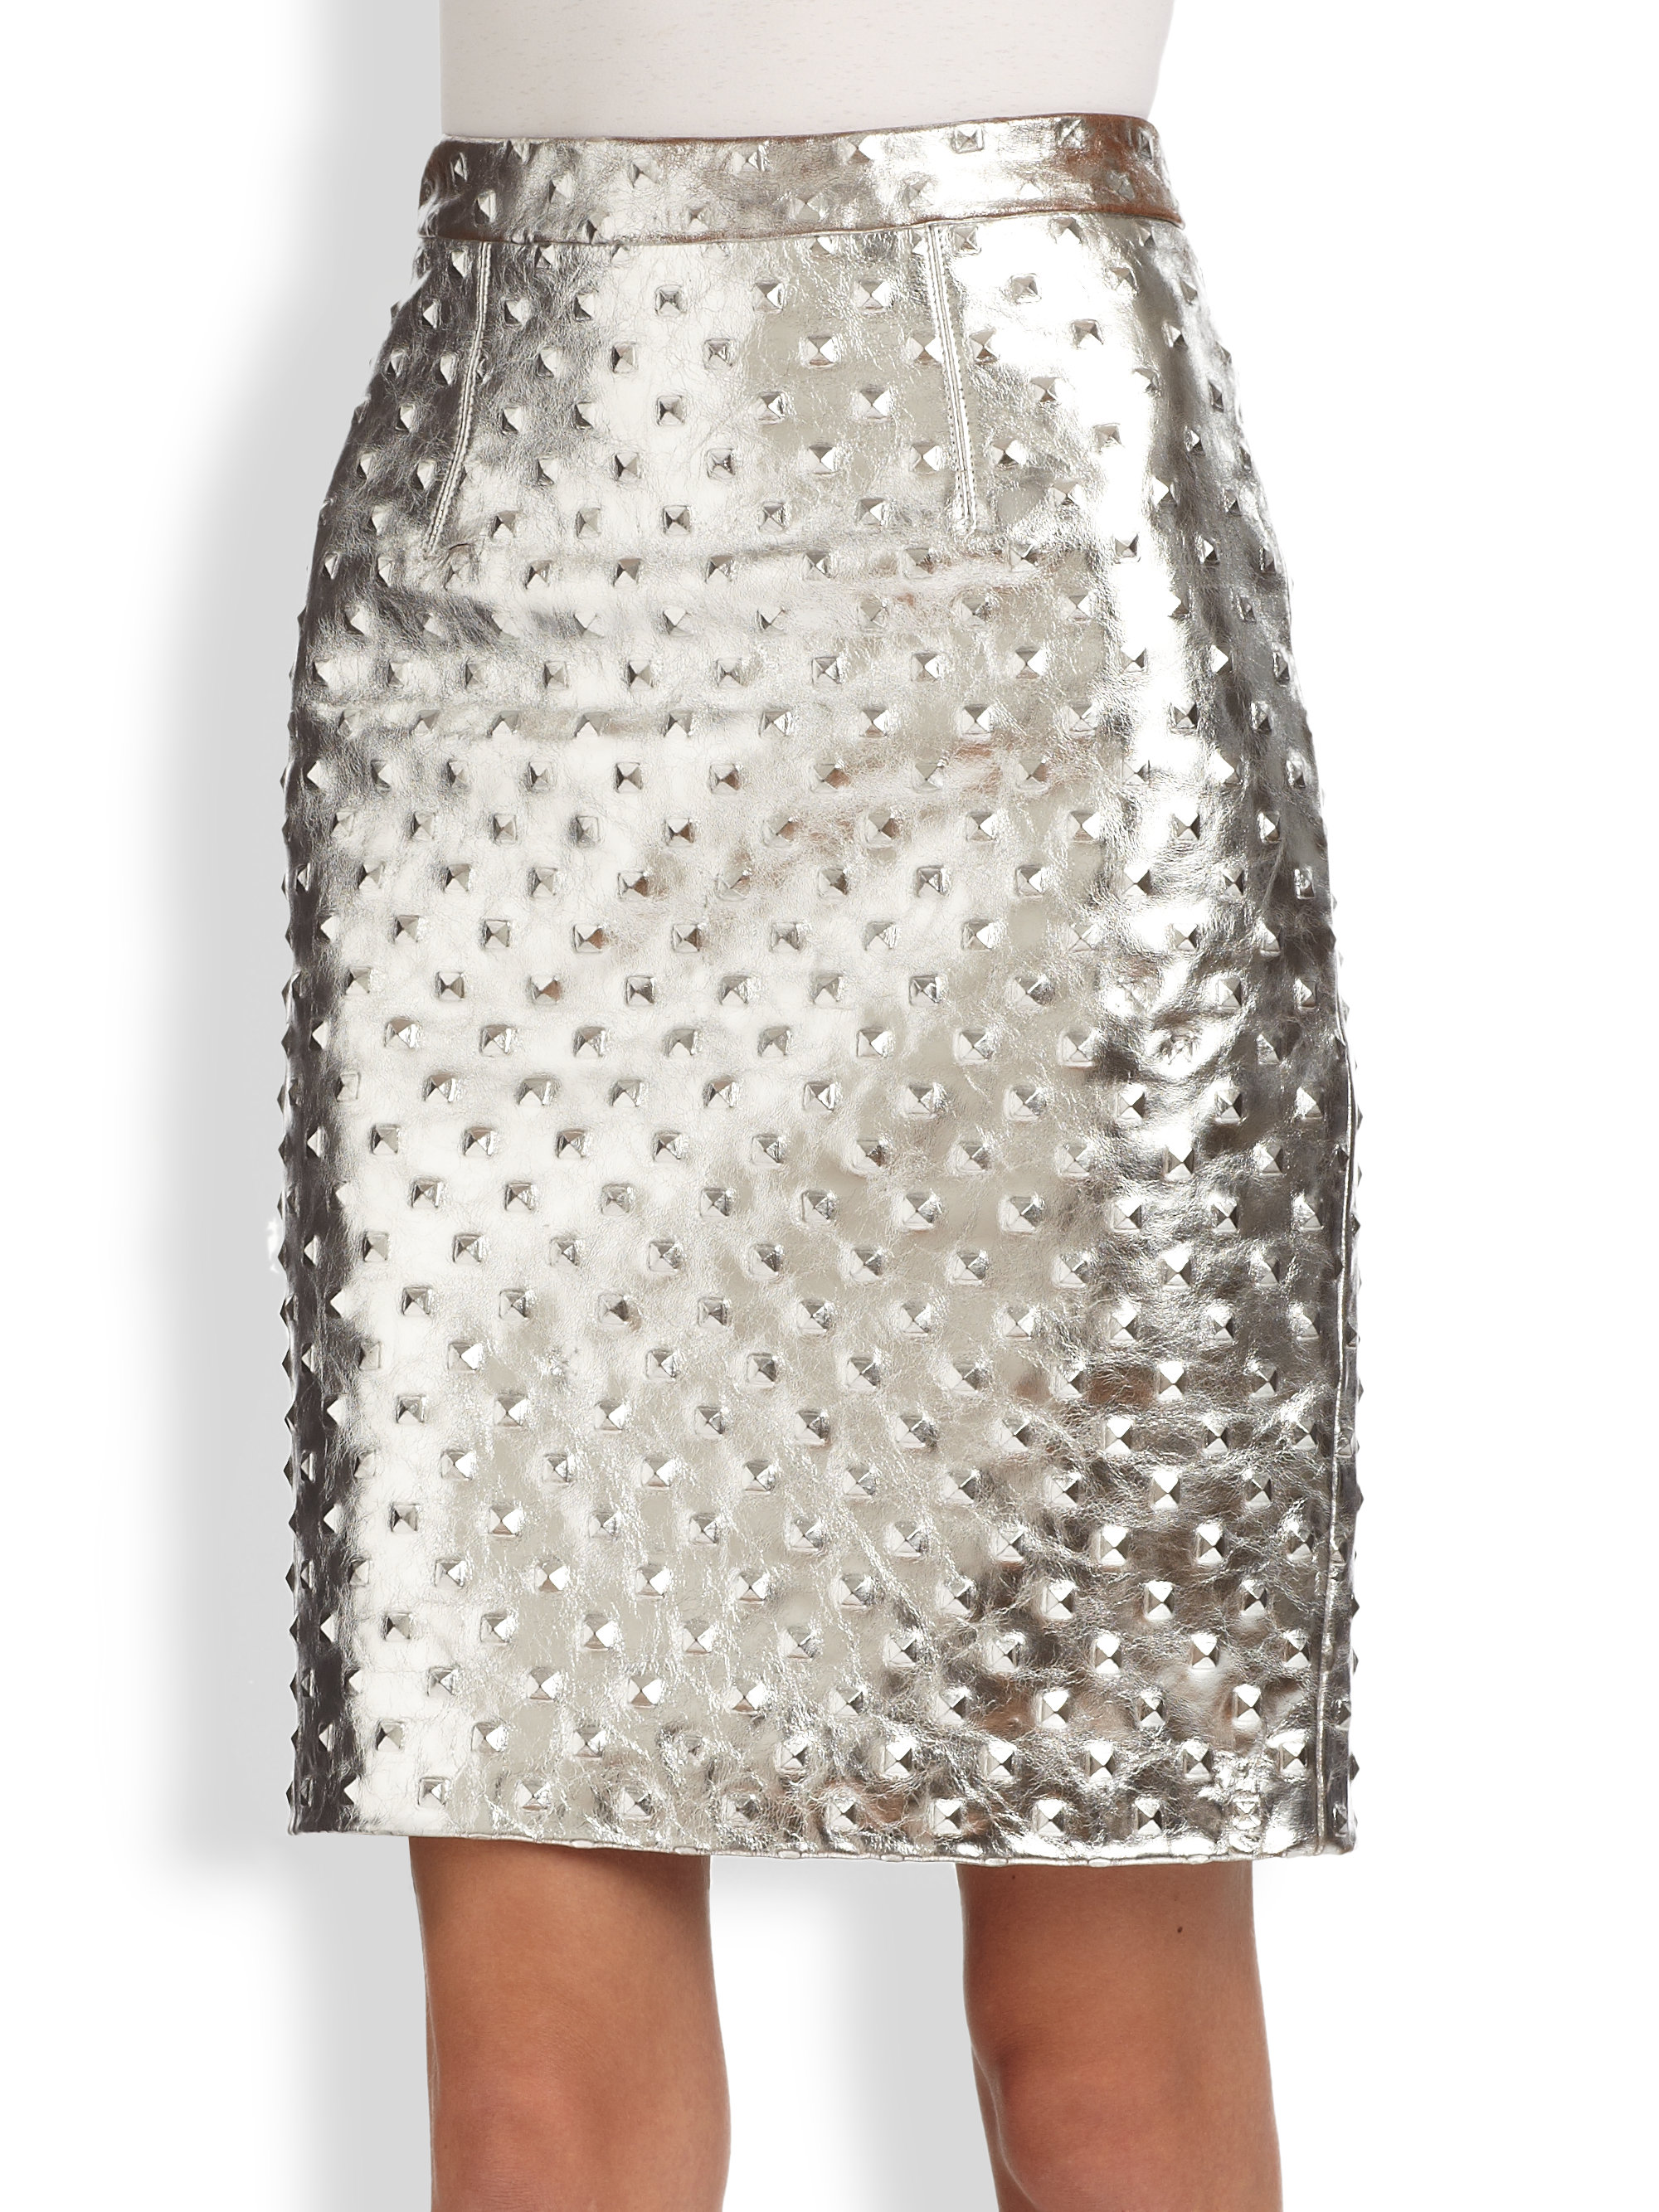 dcb1624ee20 Lyst - MILLY Studded Metallic Leather Pencil Skirt in Metallic